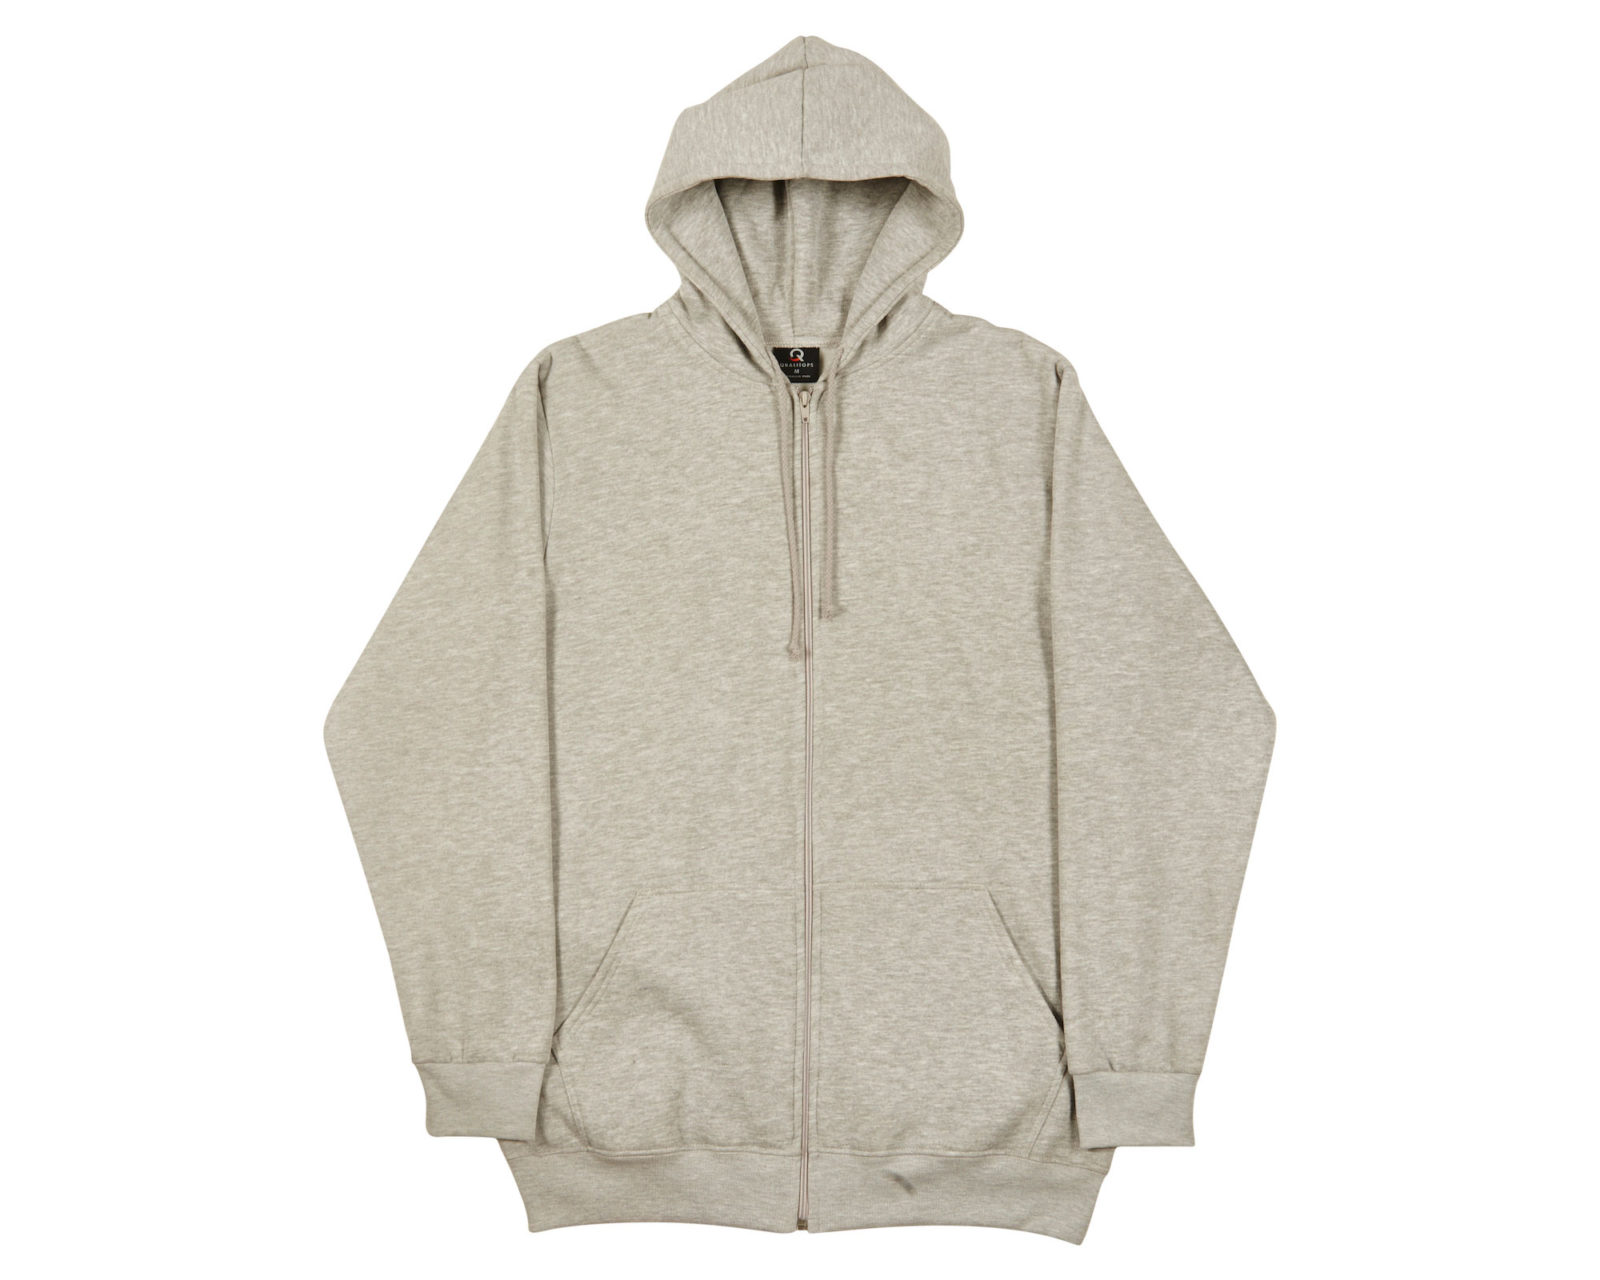 Qualitops Mens Tall Zip Hoodie Australian made